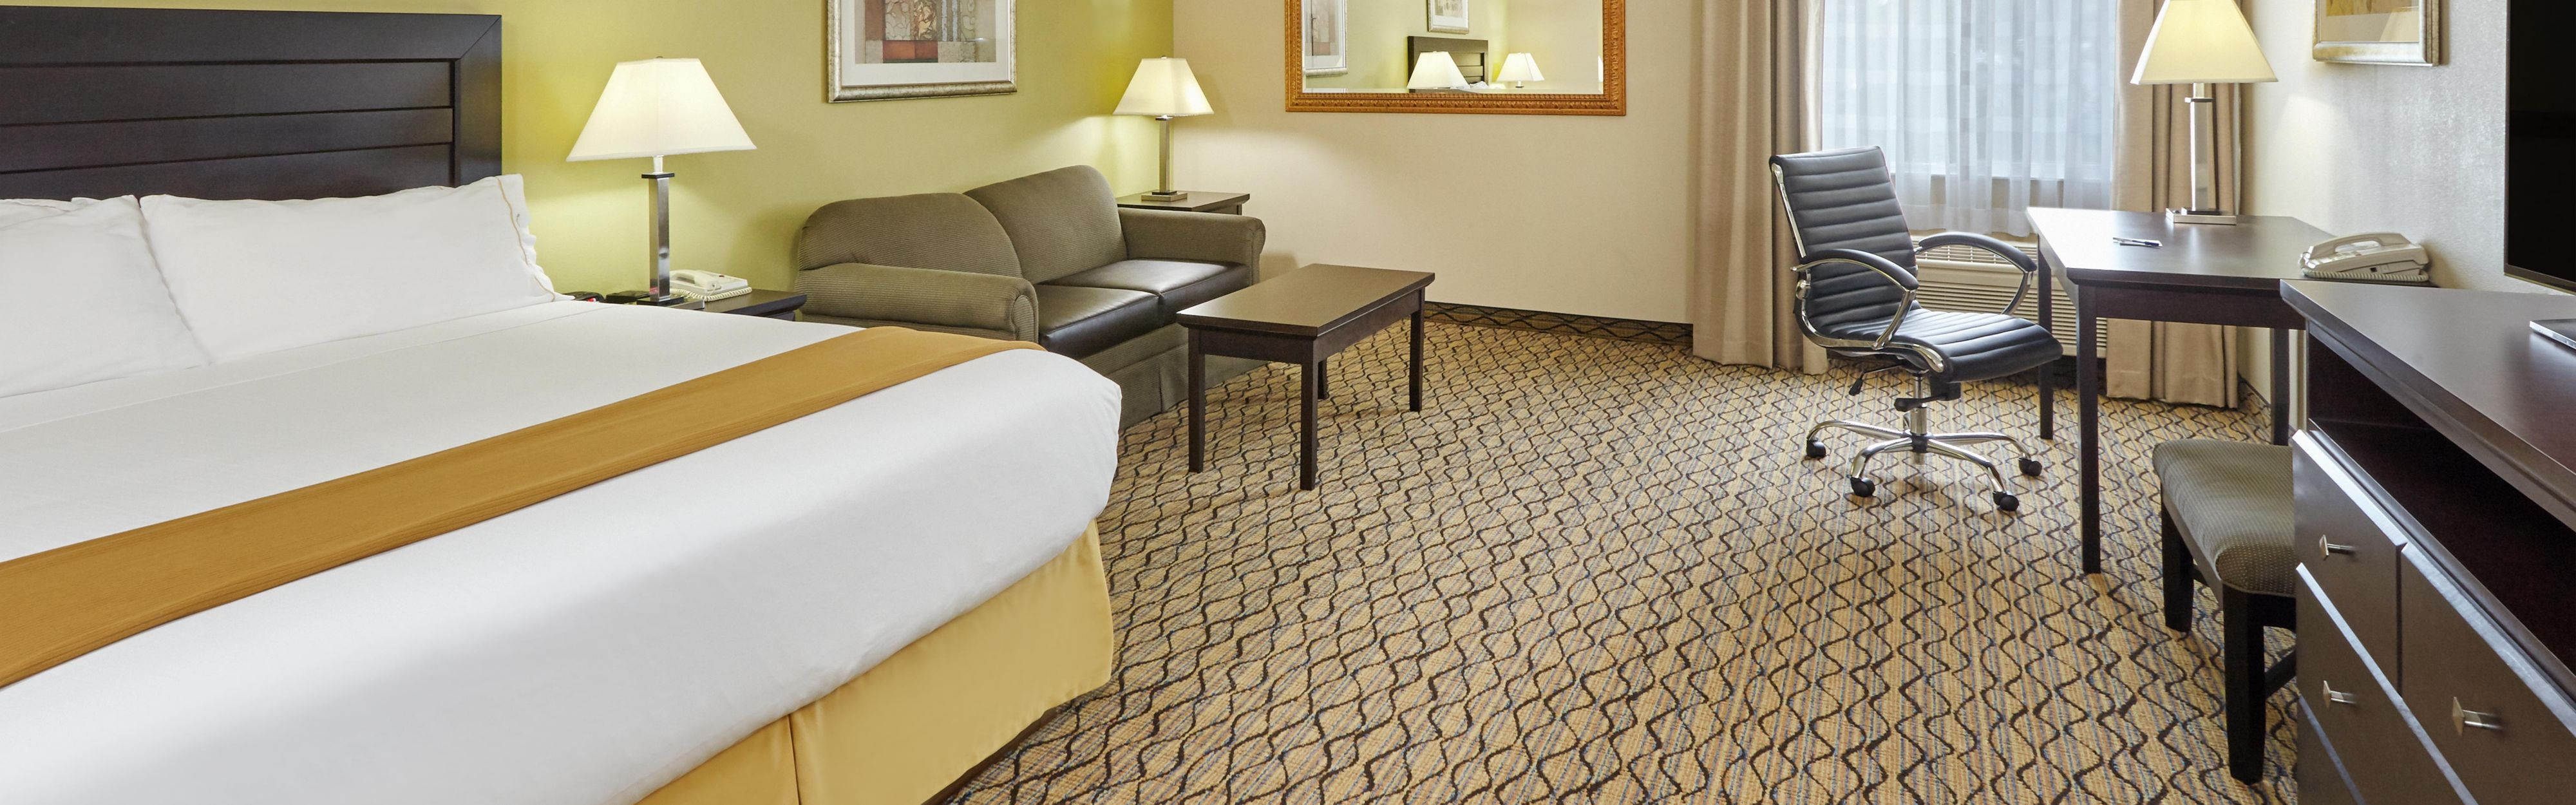 Holiday Inn Express & Suites Chicago-Libertyville image 1